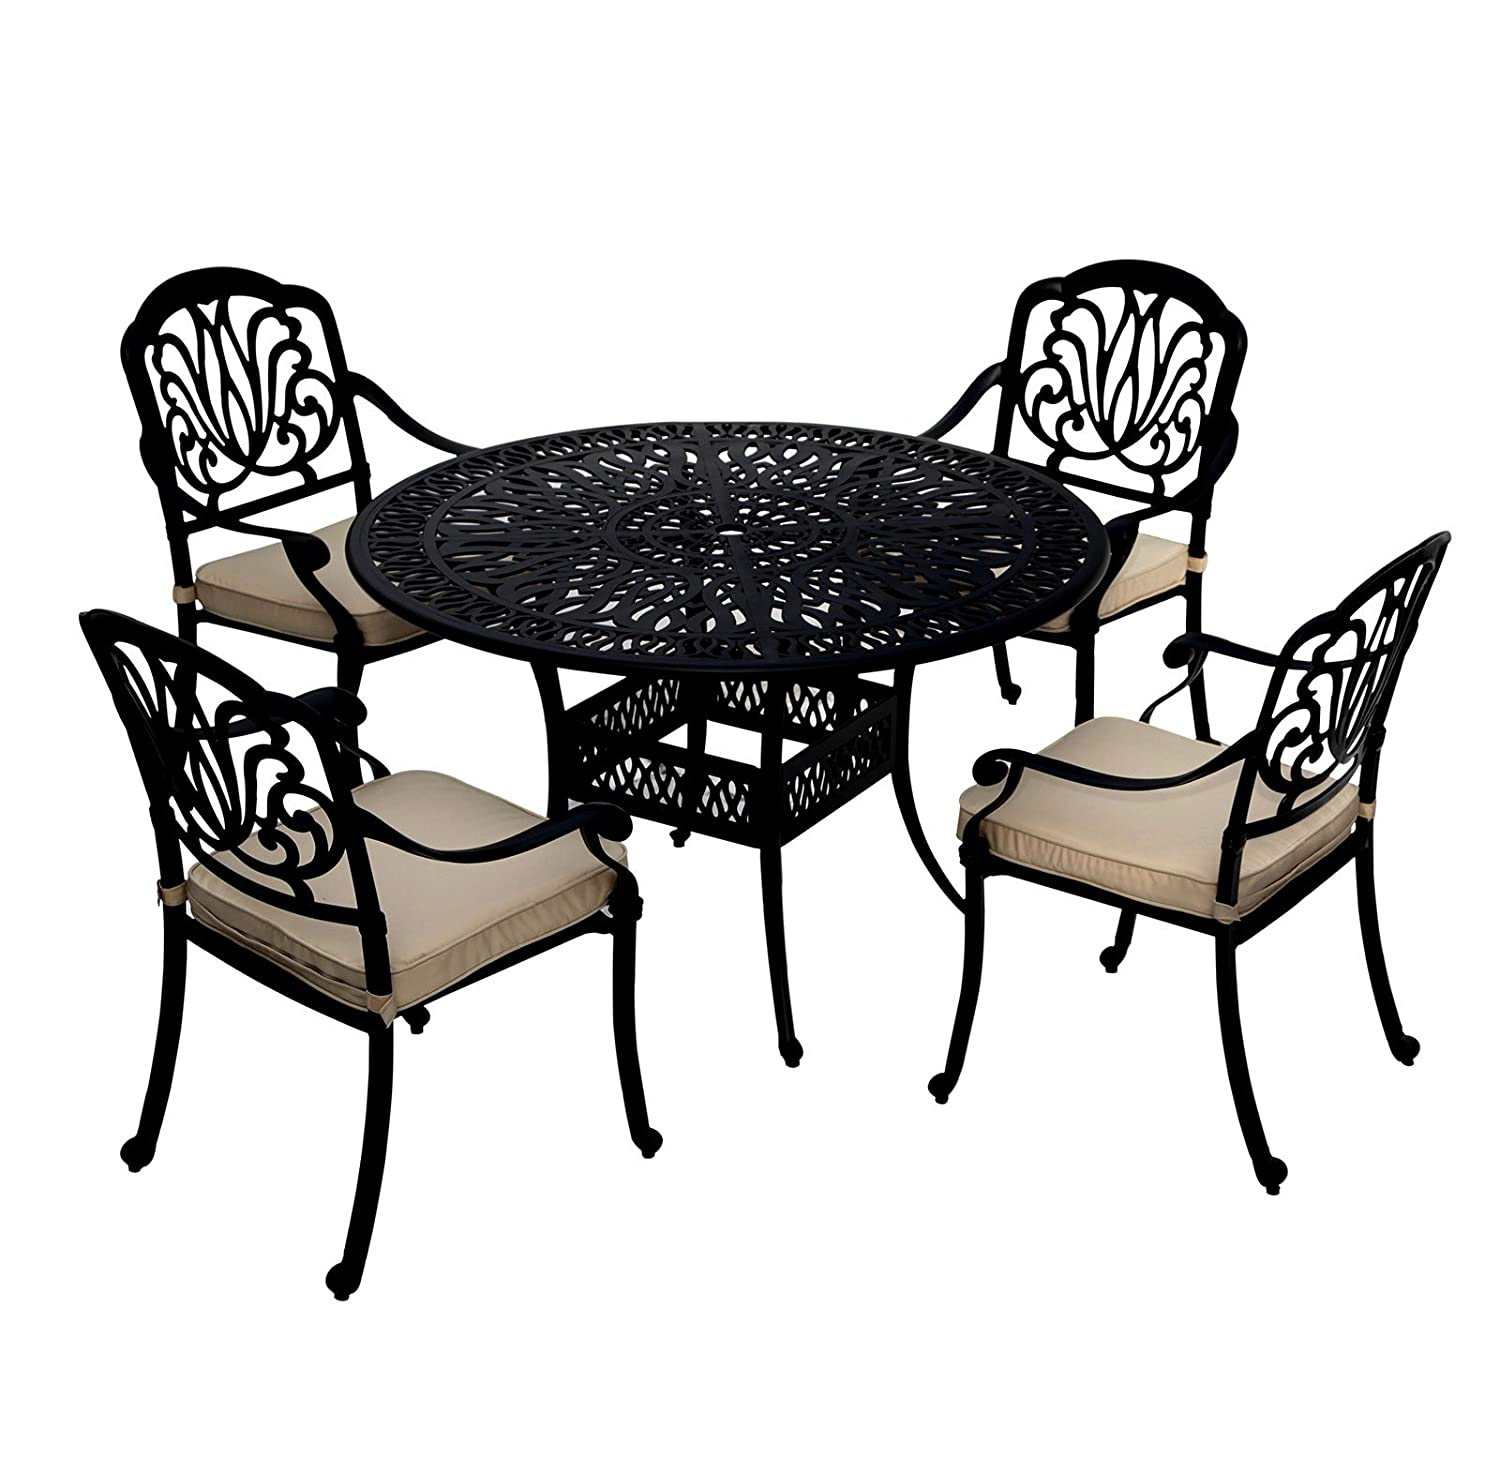 bentley garden sitzgruppe mit 4 st hlen aluminiumguss f r garten terrasse schwarz. Black Bedroom Furniture Sets. Home Design Ideas